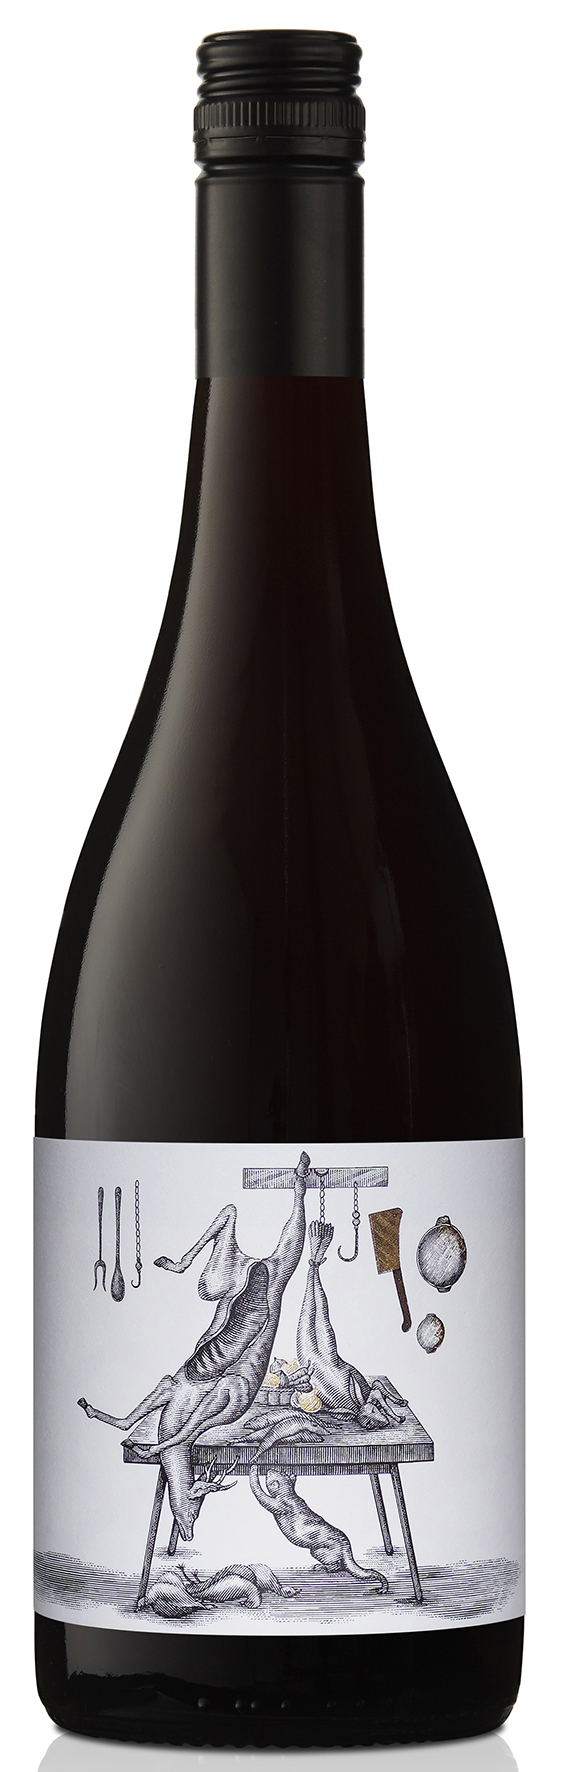 Chris Shanahan Australian Wine Beer Judge Writer And Connoisseur Tendencies Short Shirts Basic Long Collar Less Burgundy L Another Year On The Bottled Delivered Its Earlier Promise Limpid Youthful Colour Floral Savoury Aroma Subtle But Assertive Palate